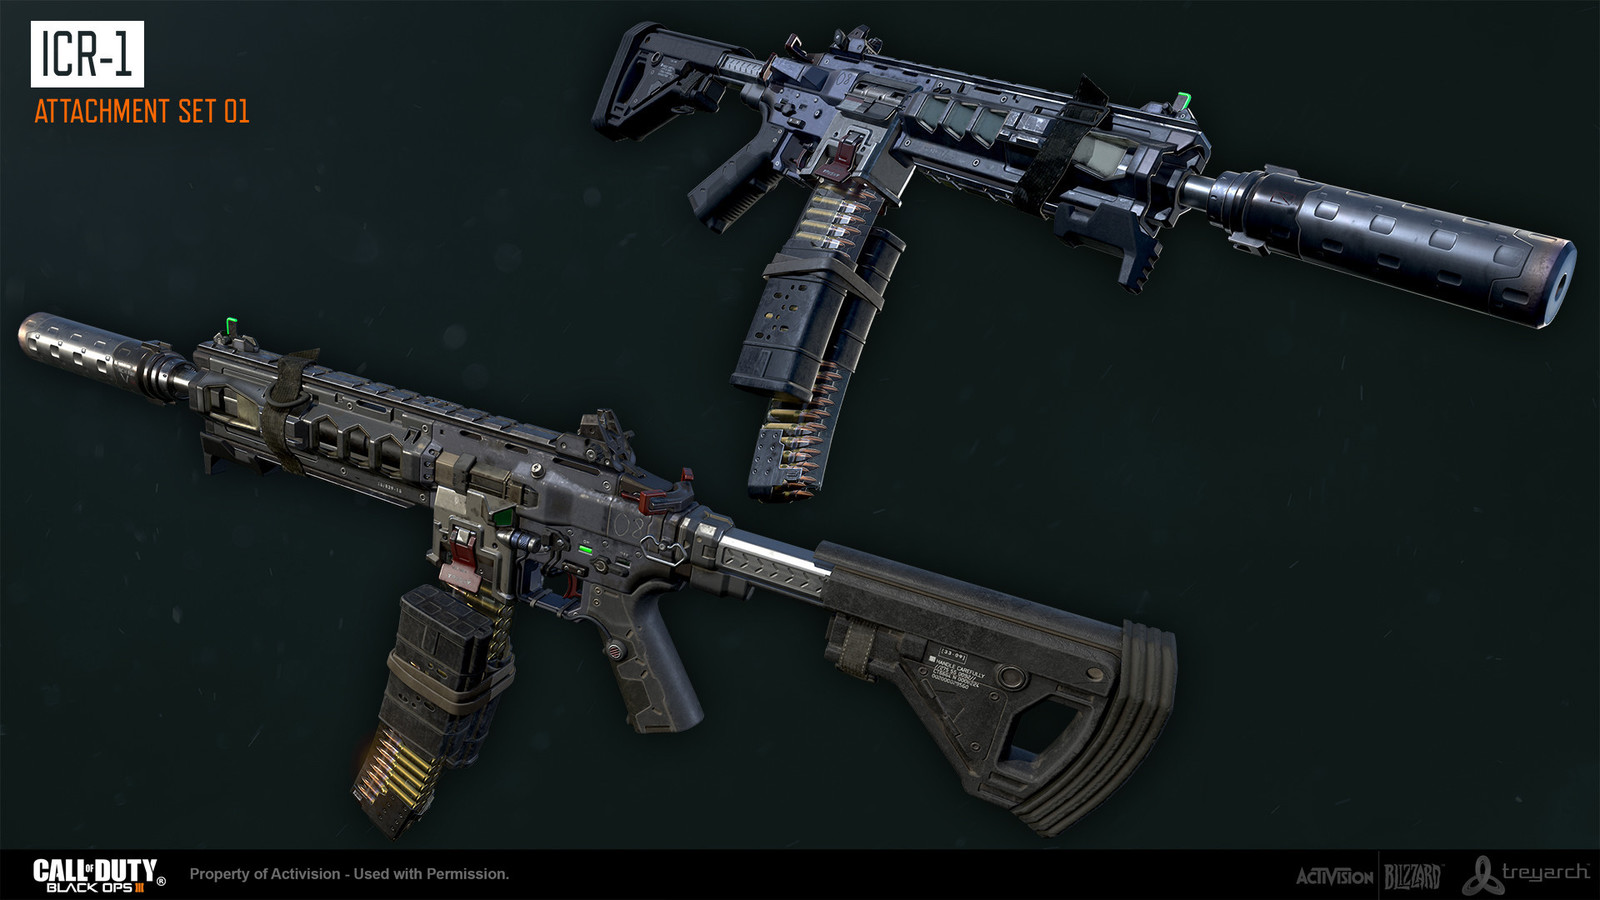 Additional attachment modeling support by Derek Larson. Base gun and textures by Ethan Hiley